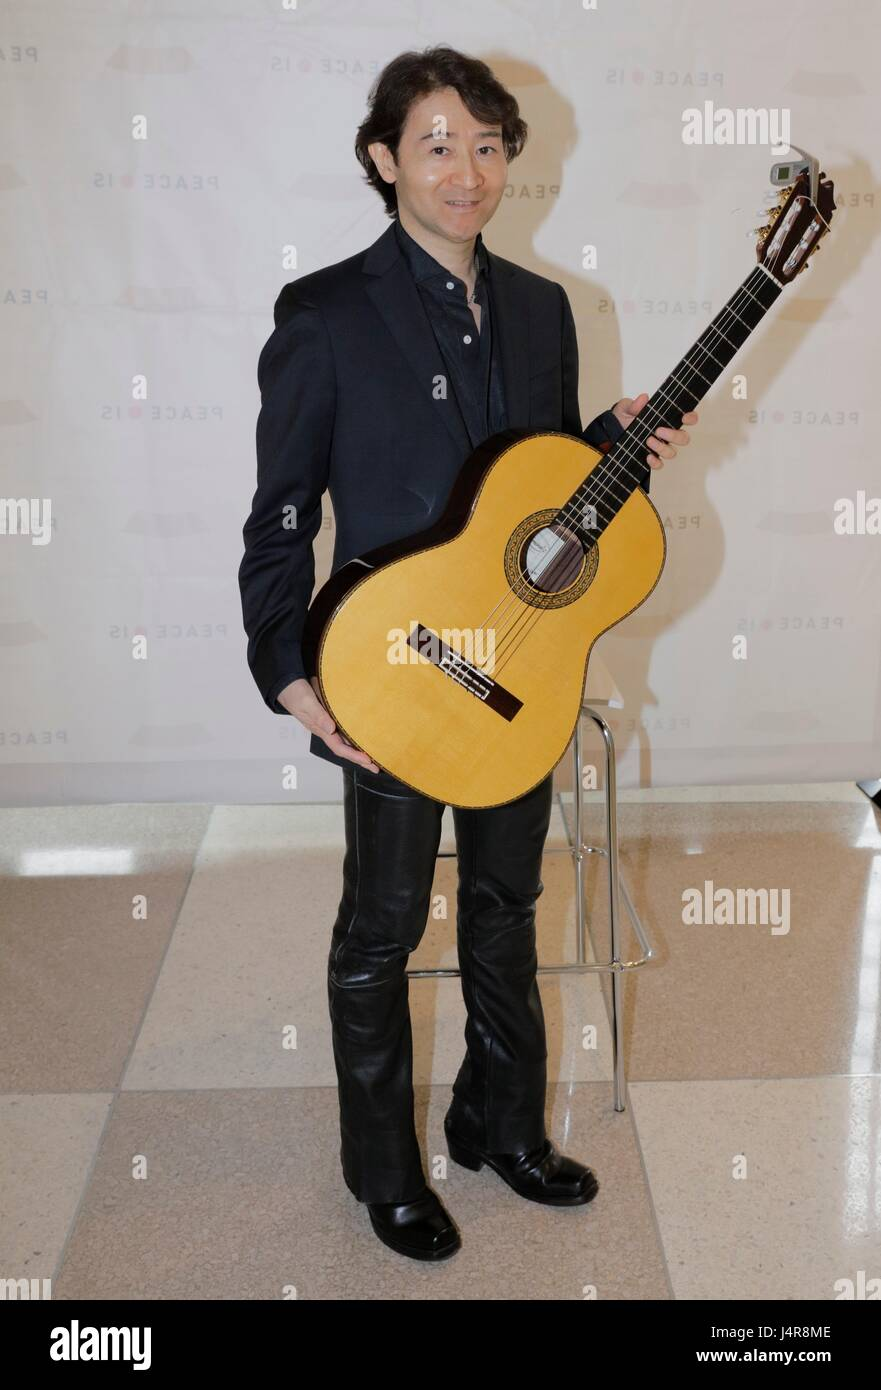 United Nations, New York, USA, May 12 2017 - PEACE IS a Concert by Shiro Otake honoring Argentina guitar player - Stock Image